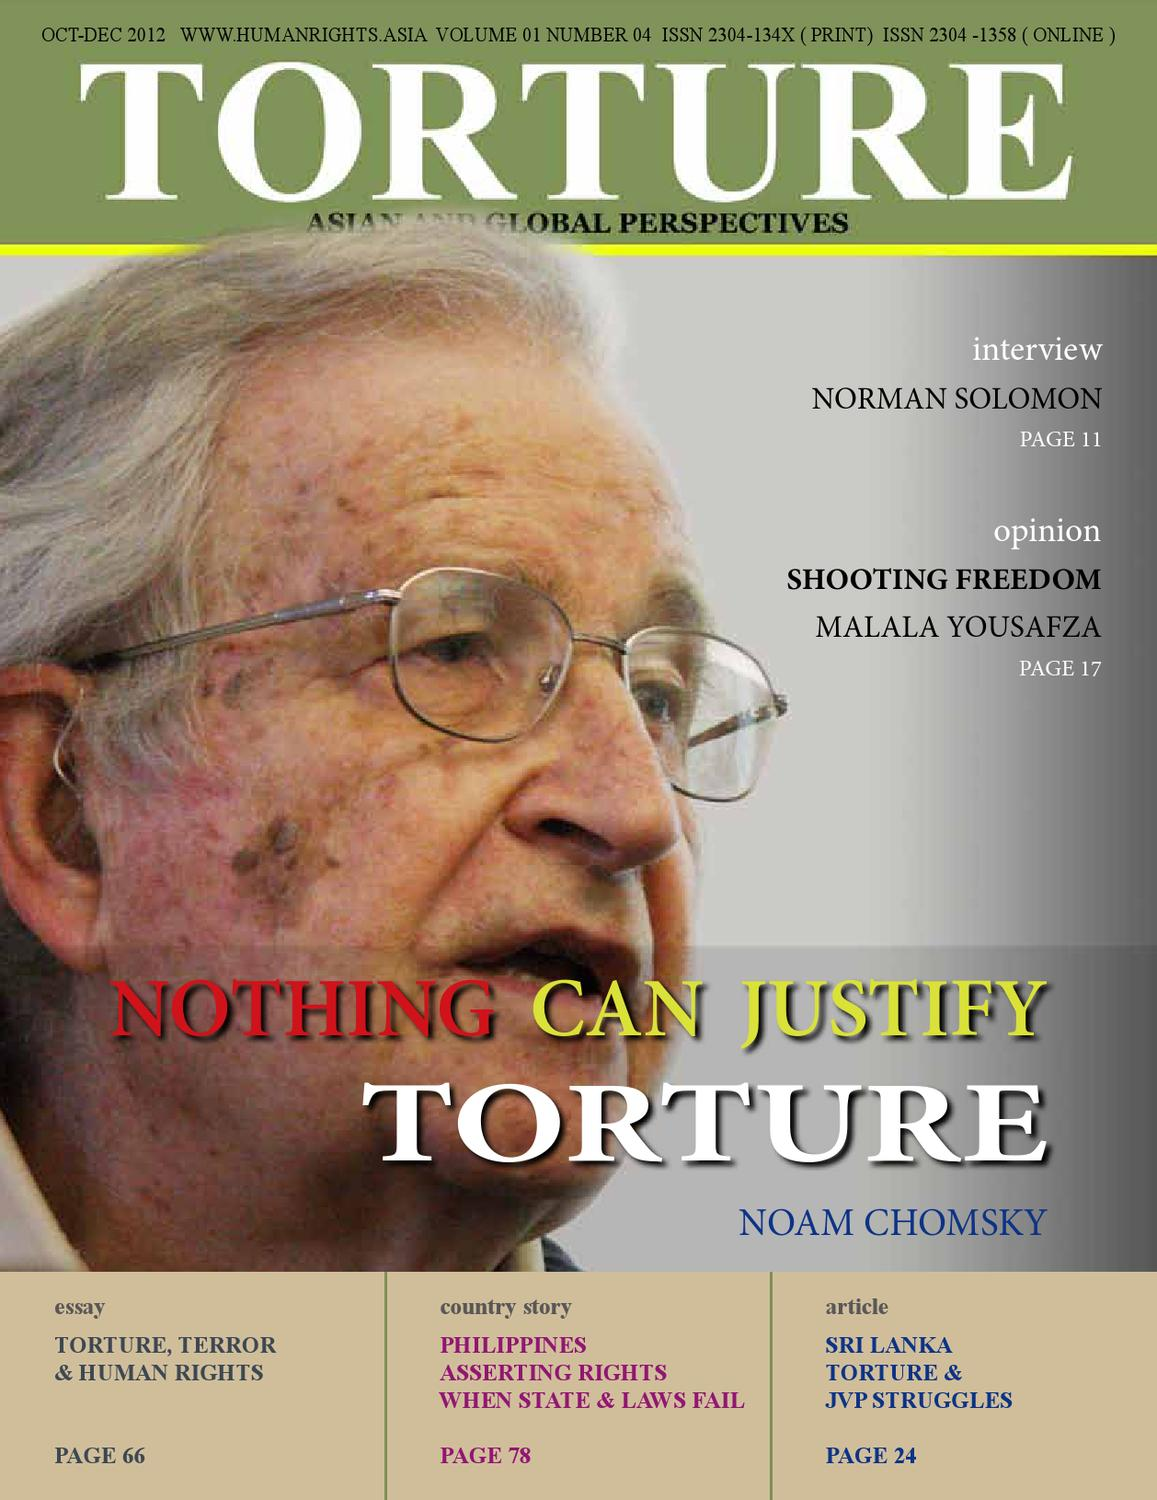 essay on torture and human rights The human rights situation in the common forms of torture include protecting rights, saving lives human rights watch defends the rights of.